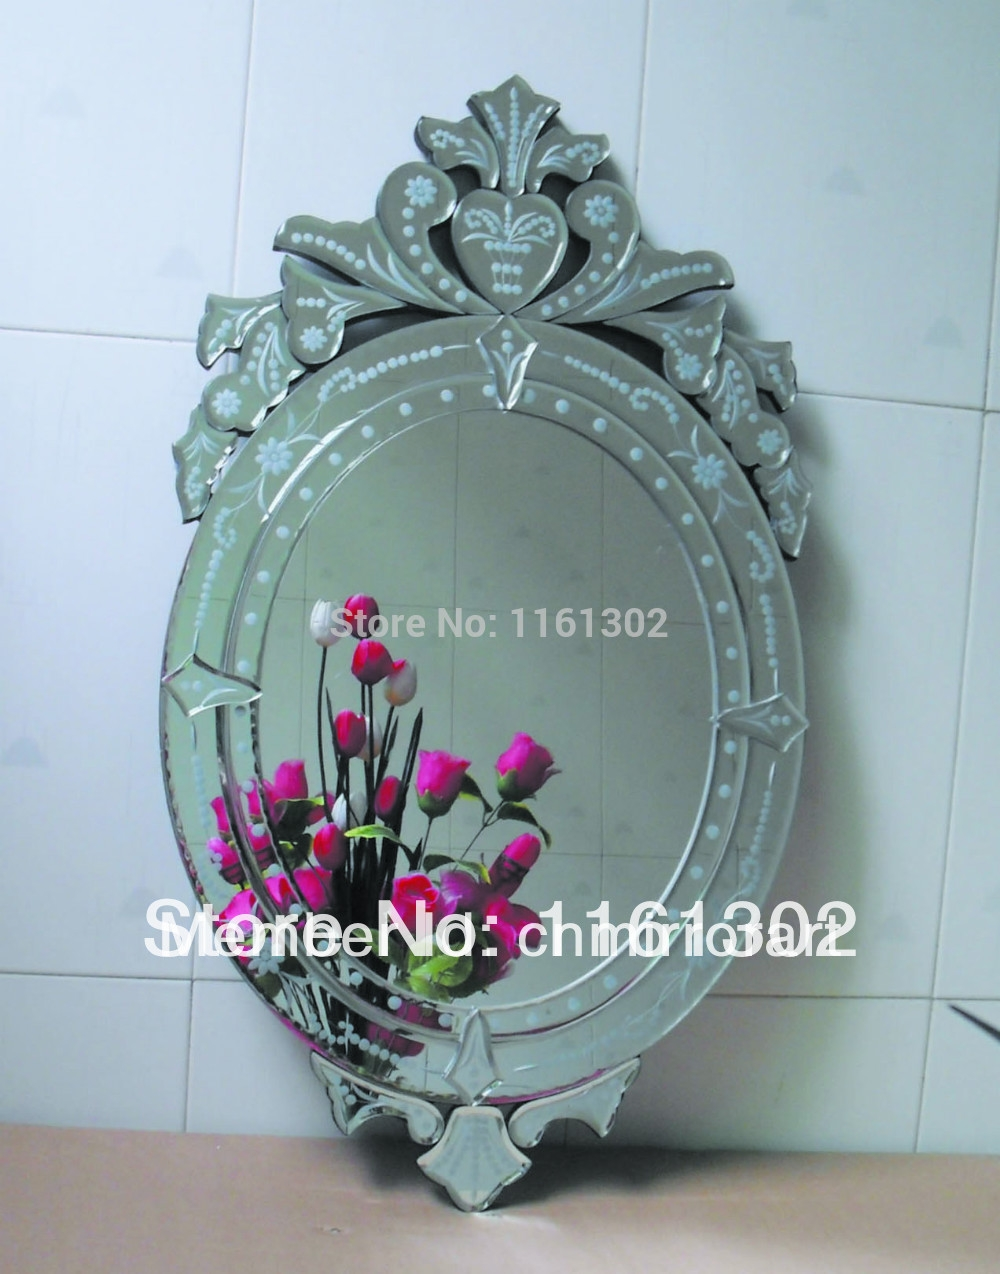 Online Get Cheap Venetian Wall Mirror Aliexpress Alibaba Group Pertaining To Venetian Style Mirrors Cheap (Image 14 of 15)